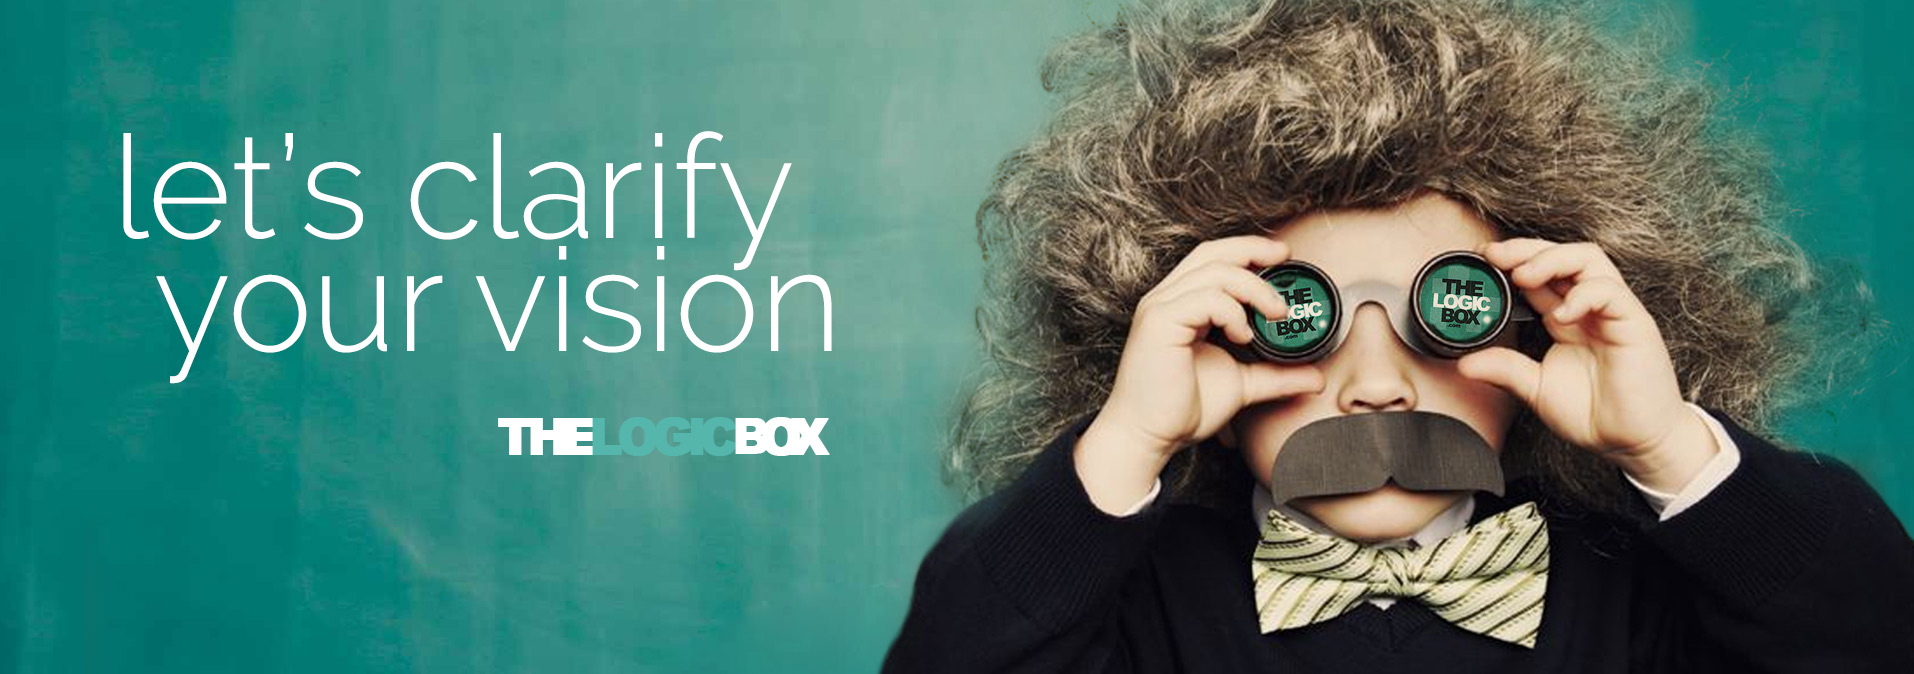 the-logic-box--header-lets-clarify-your-vision